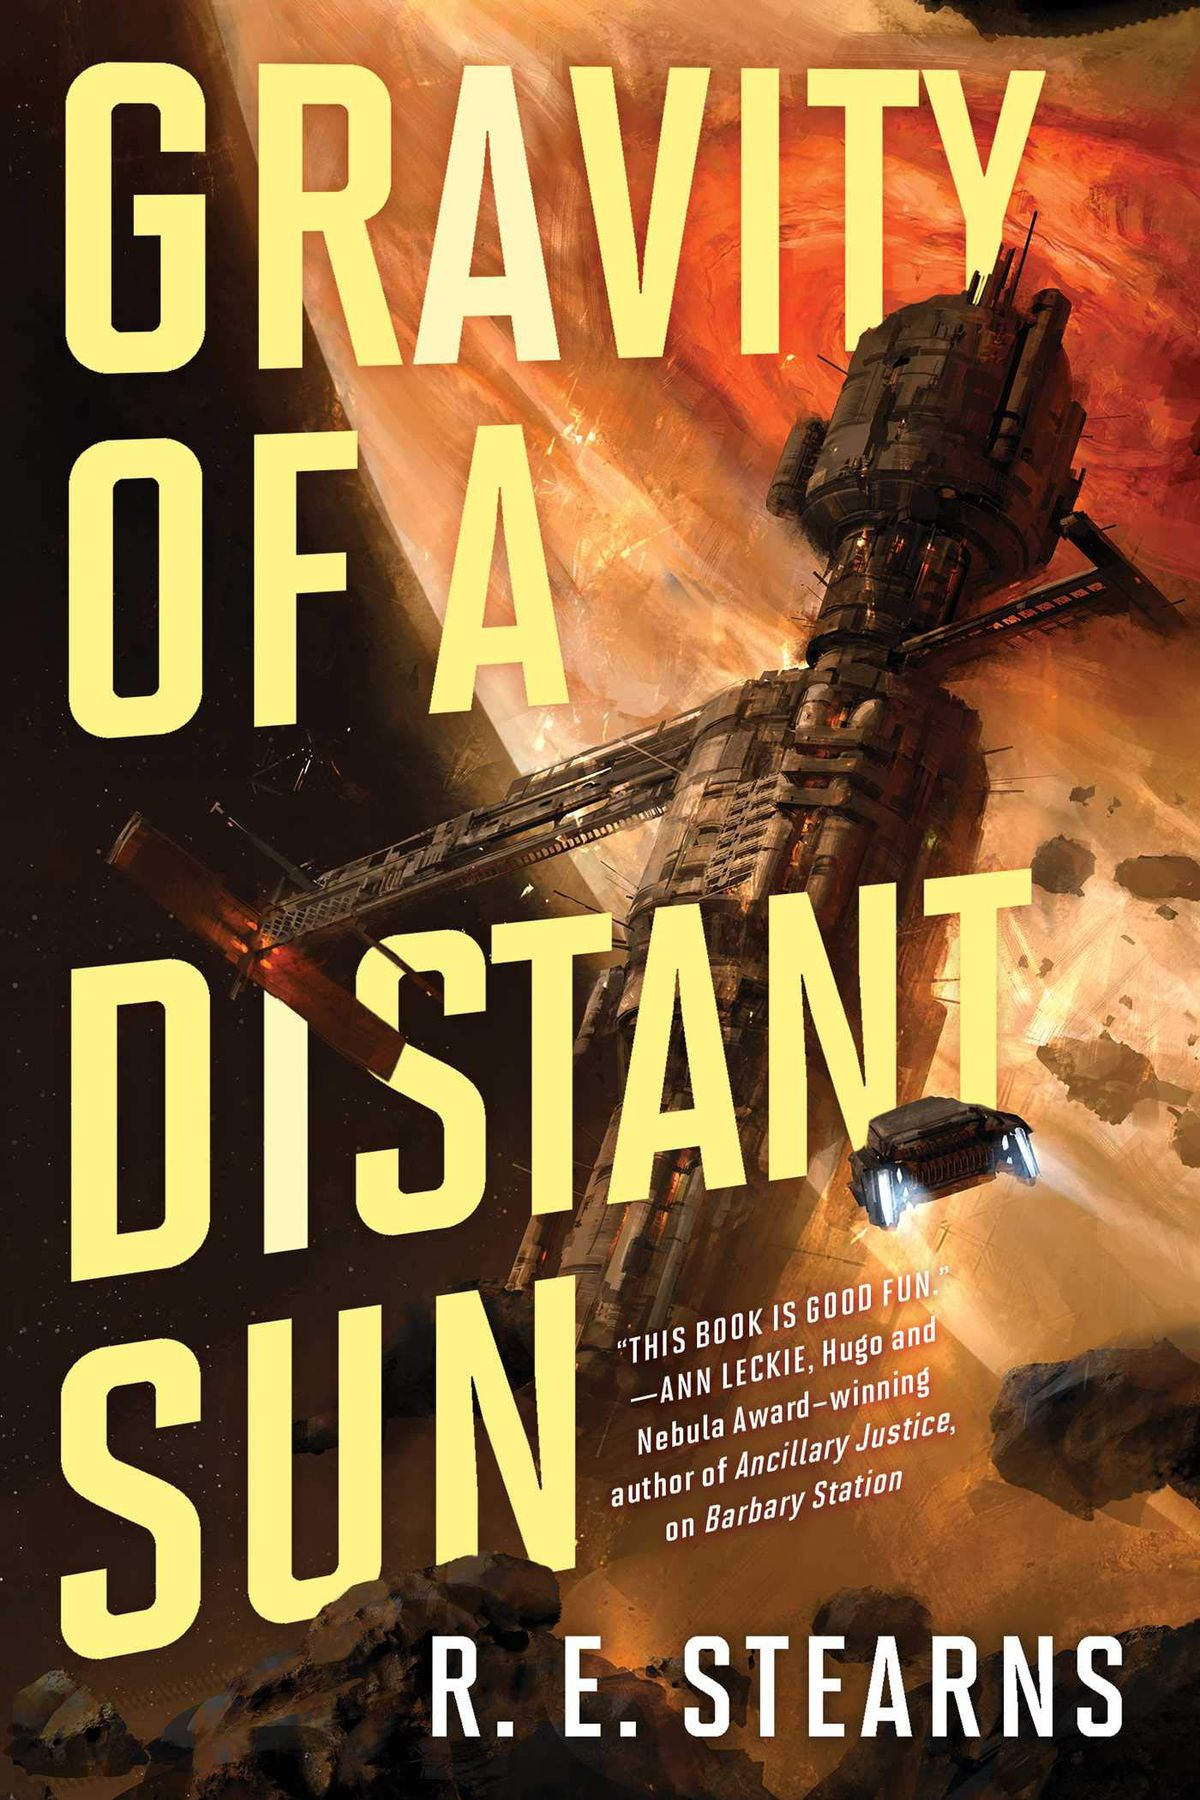 the space station floats on the cover of Gravity of a distant Sun by Rs. Stearns